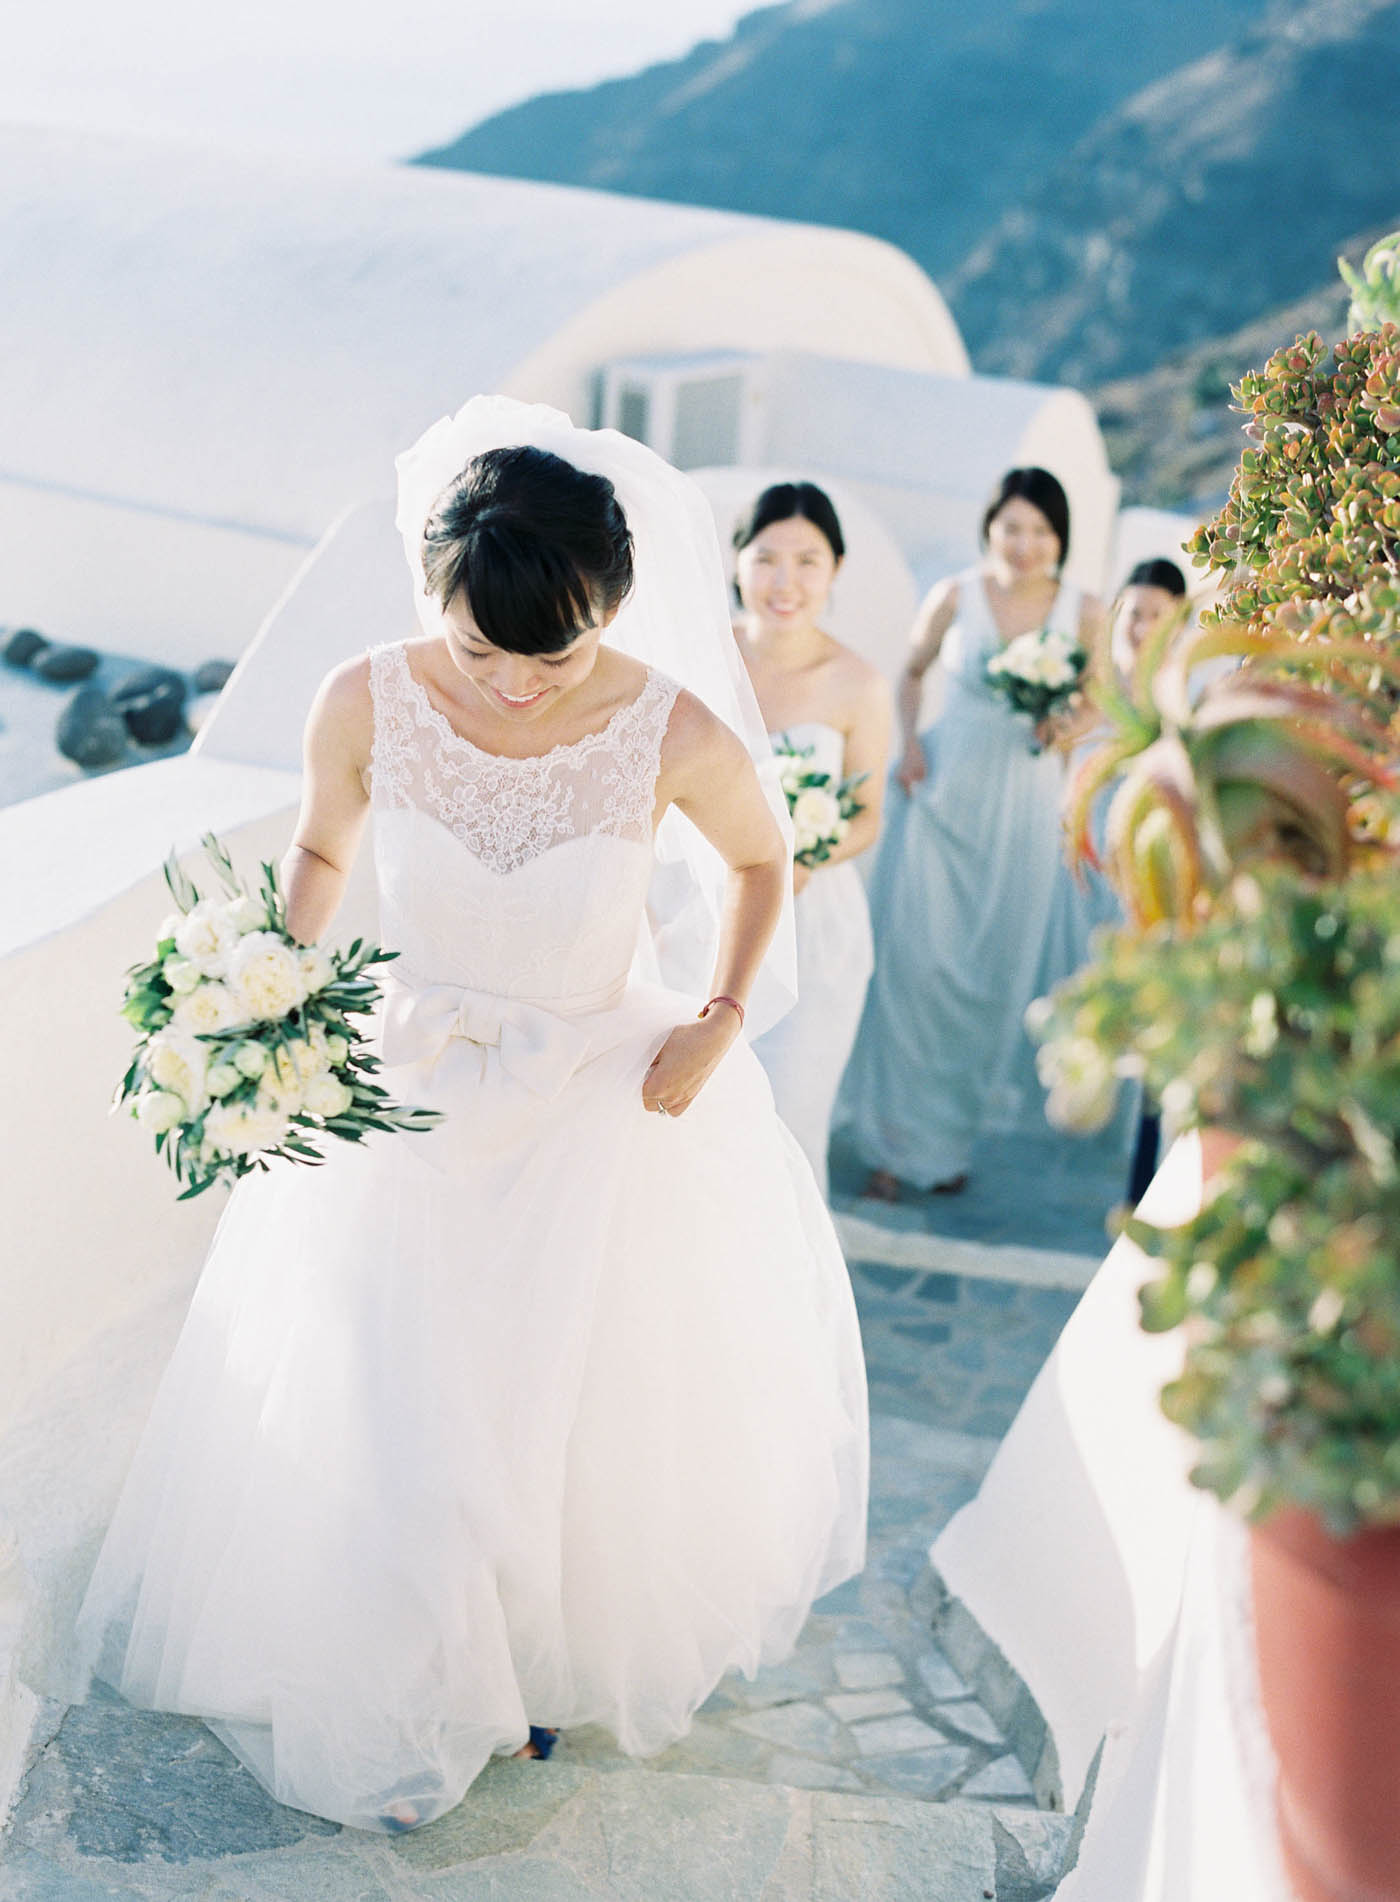 santorini-chinese-wedding-jen-huang-14.jpg